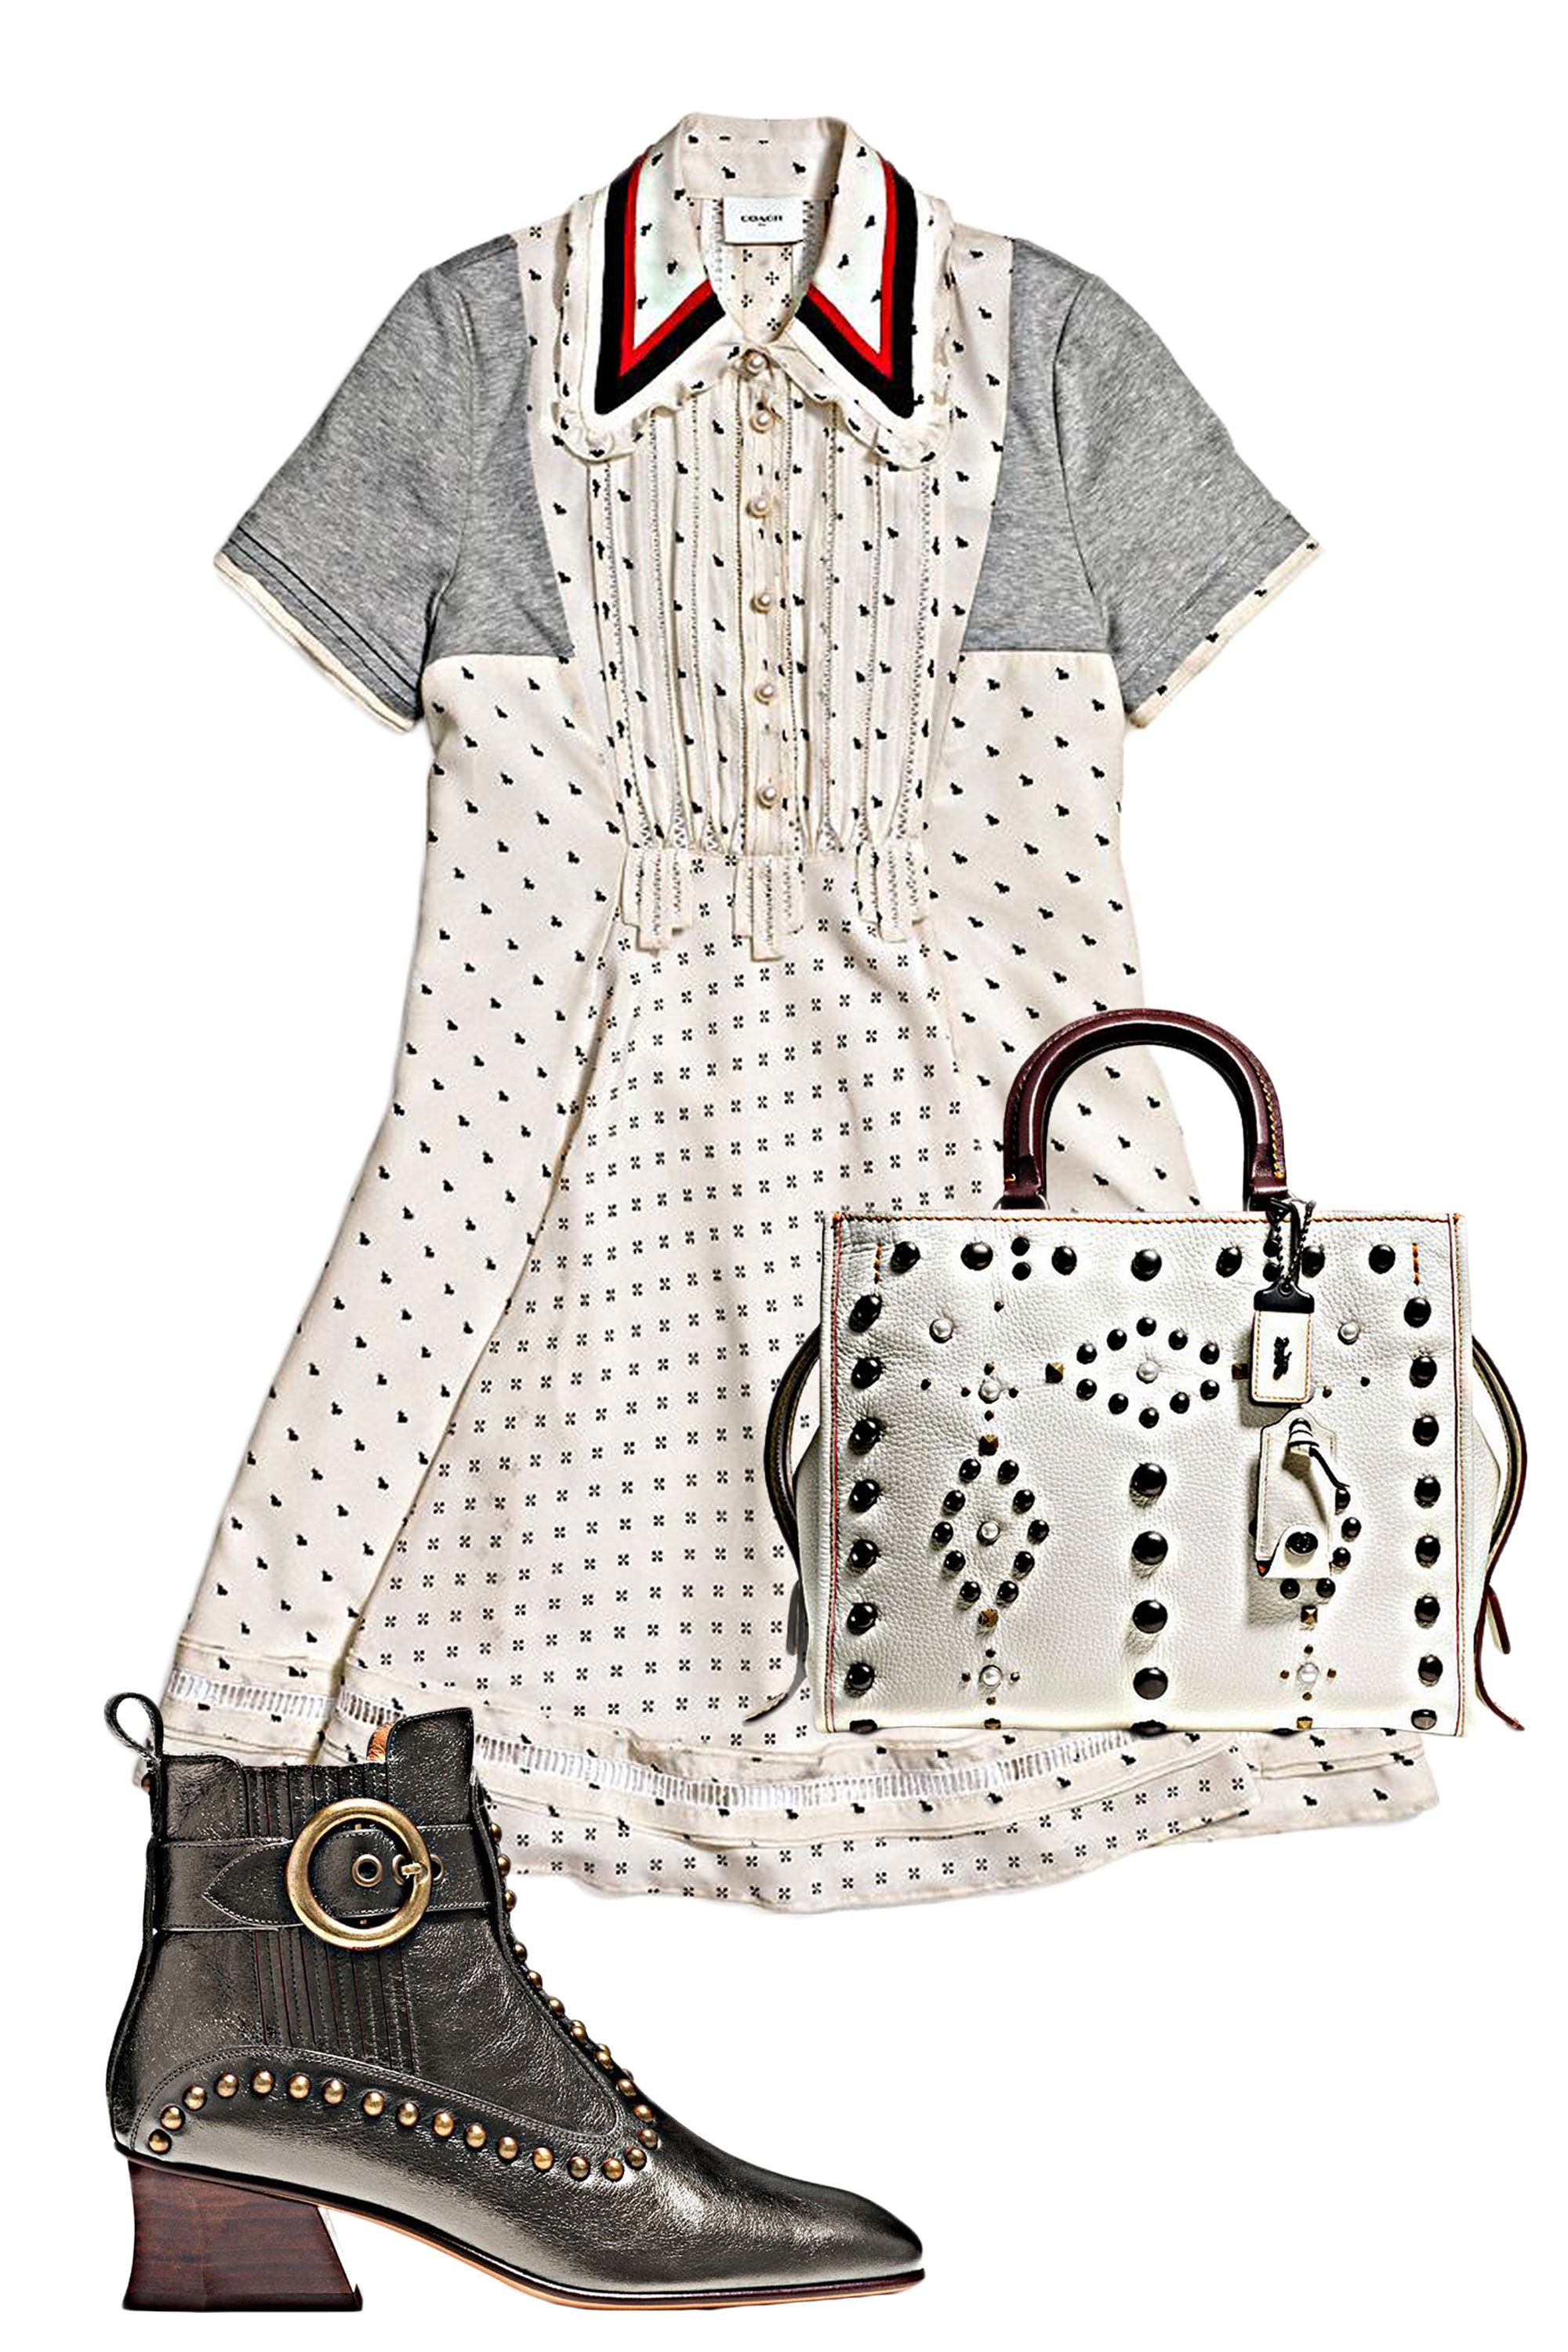 "<p>This sweet printed dress with mini bunnies gets a little extra edge with the help of a sick bag and studded boots<span class=""redactor-invisible-space"" data-verified=""redactor"" data-redactor-tag=""span"" data-redactor-class=""redactor-invisible-space""></span>—because who wants to spend all night dancing in stilettos?